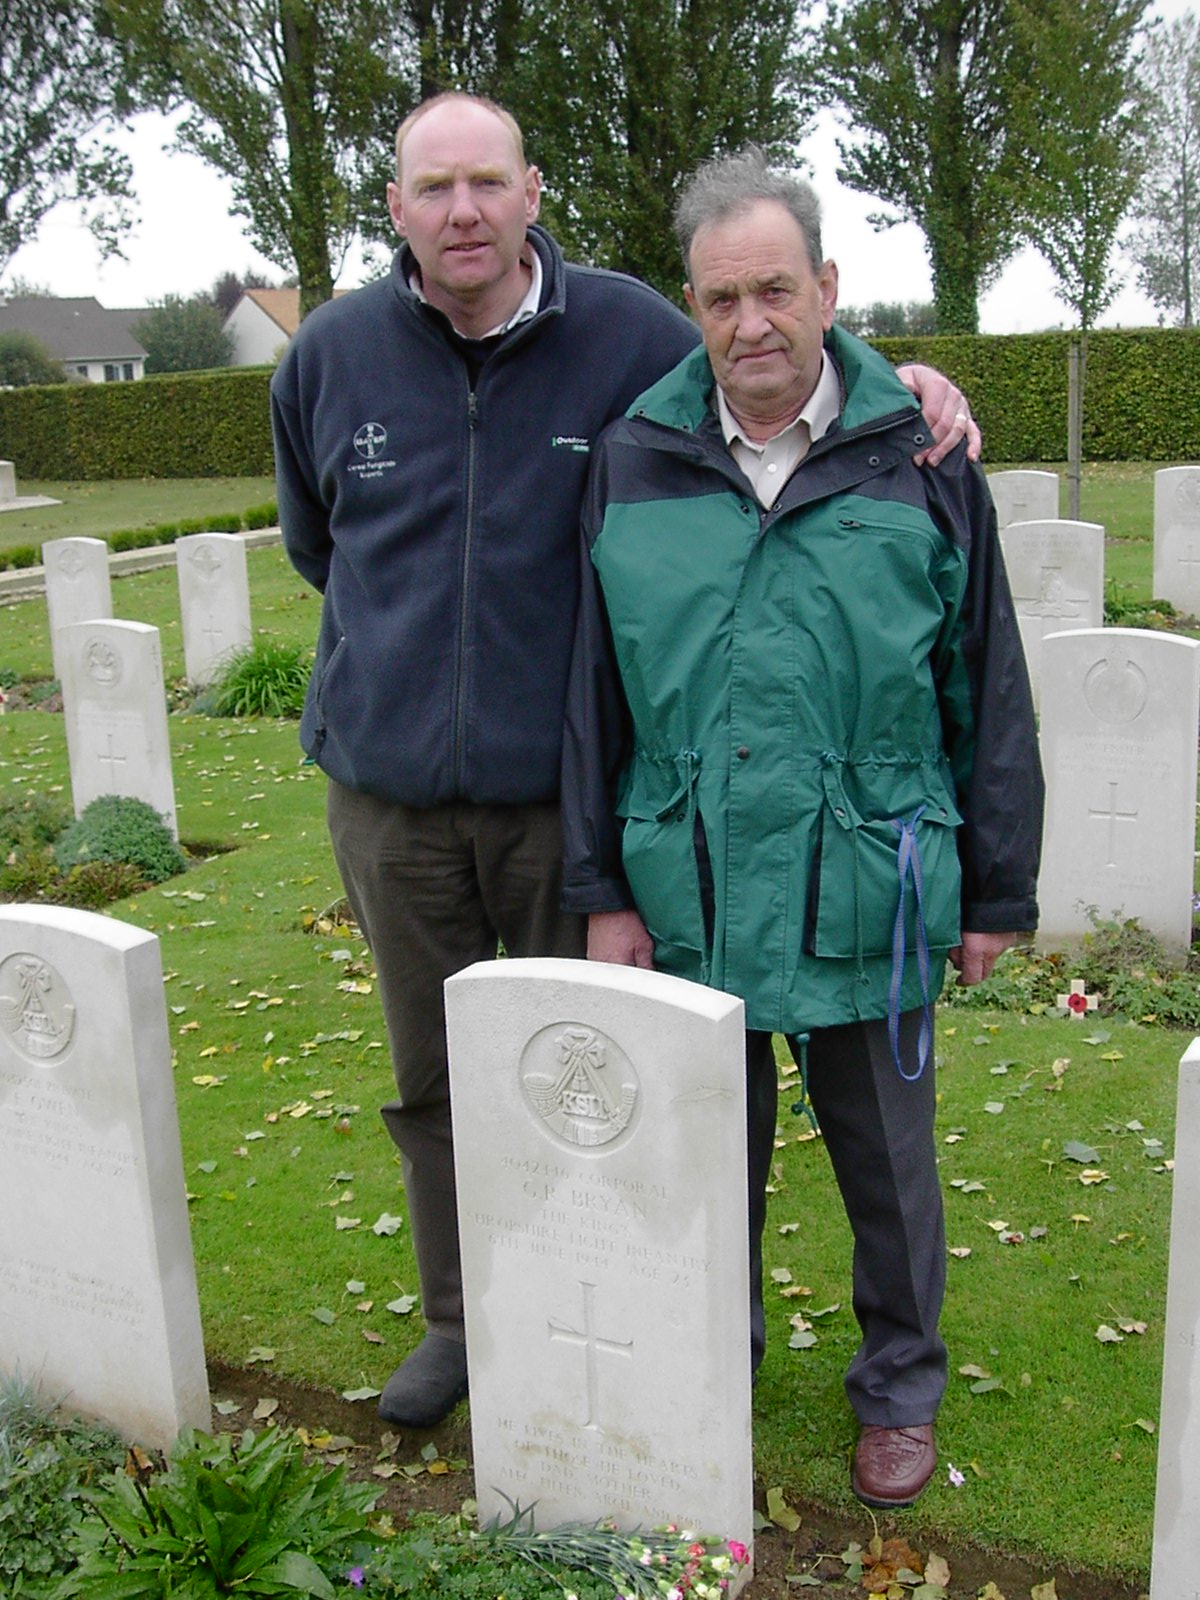 Geoffreys grave stone with Roger Bryan - great nephew - and Richard Bryan - nephew - standing next to each other behind it.